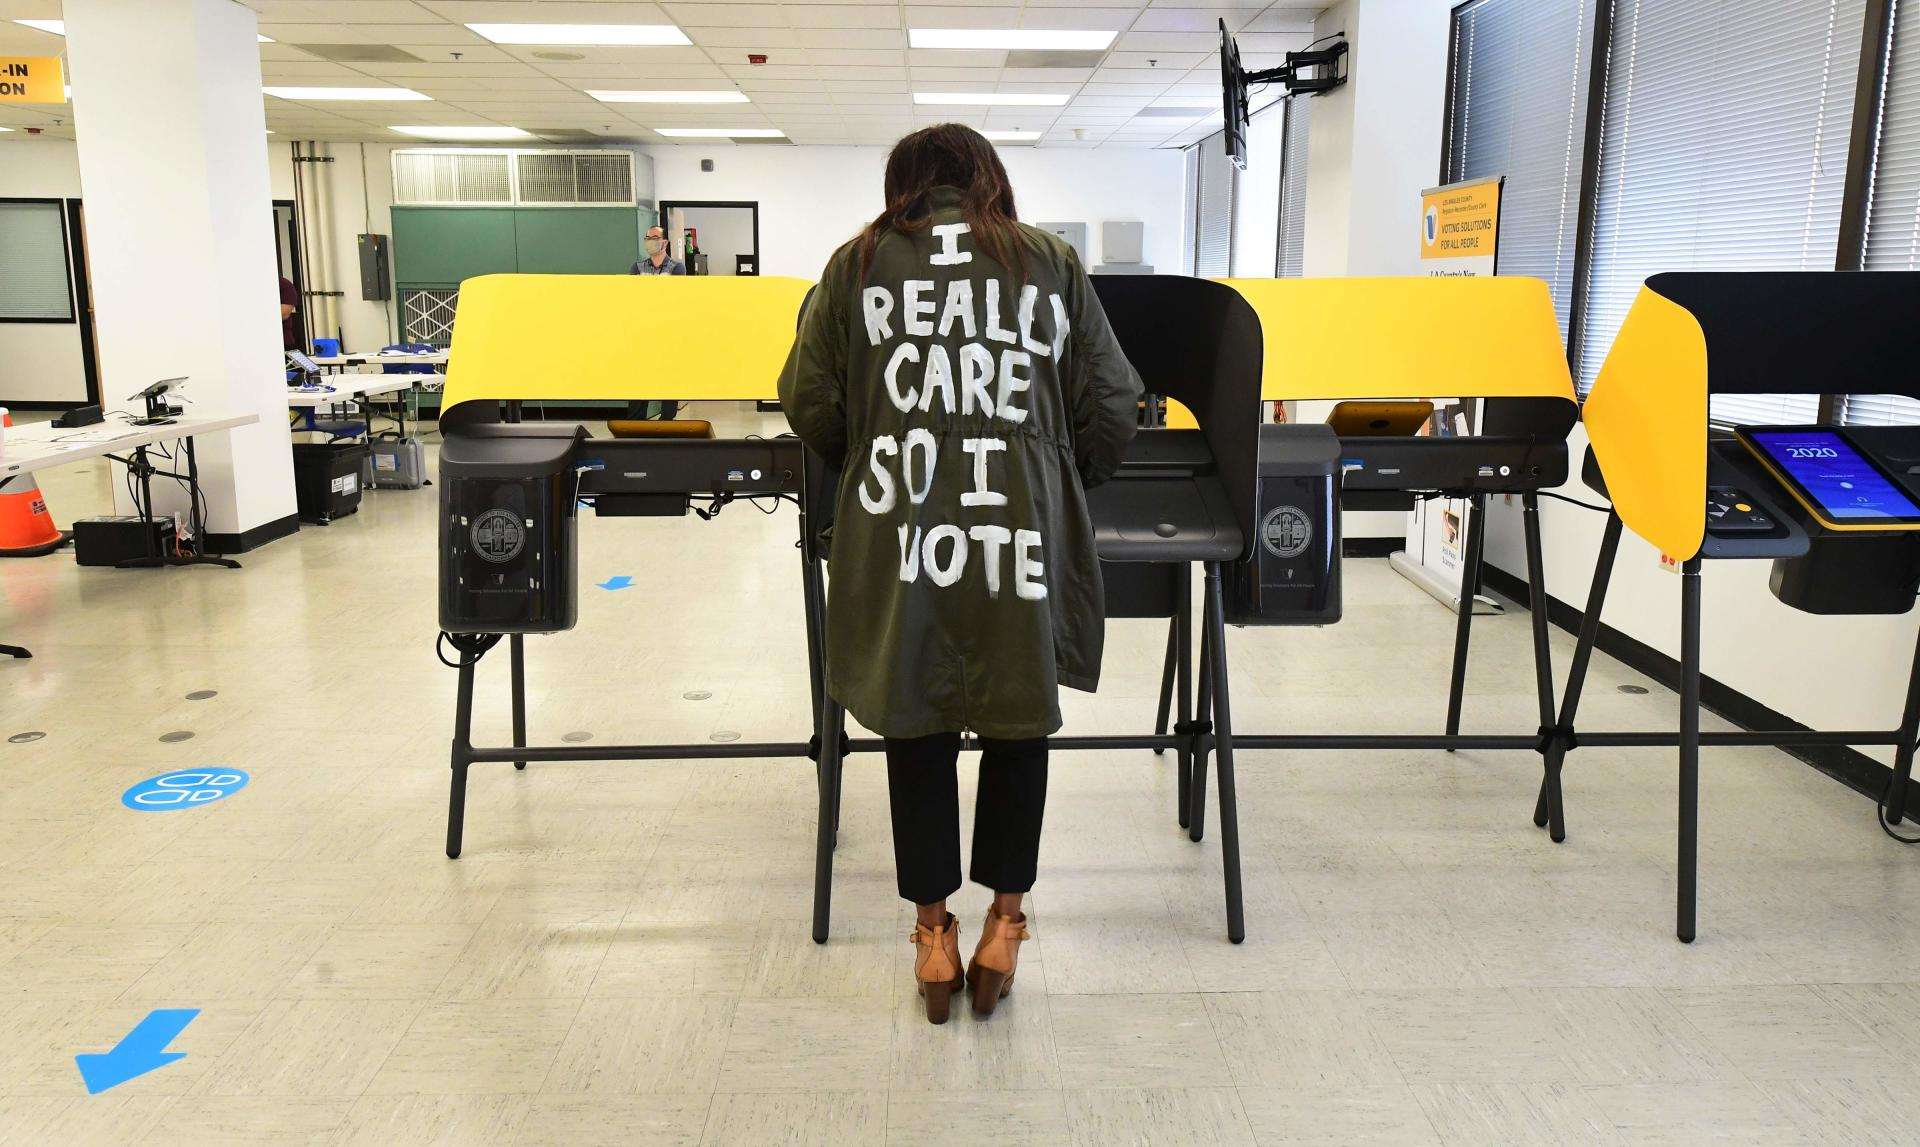 On October 19, at the Los Angeles County polling station in Norwalk, an elector referred to the mantle of U.S. First Lady Melania Trump.  She had publicly displayed a few days earlier with a similar coat on which was written: